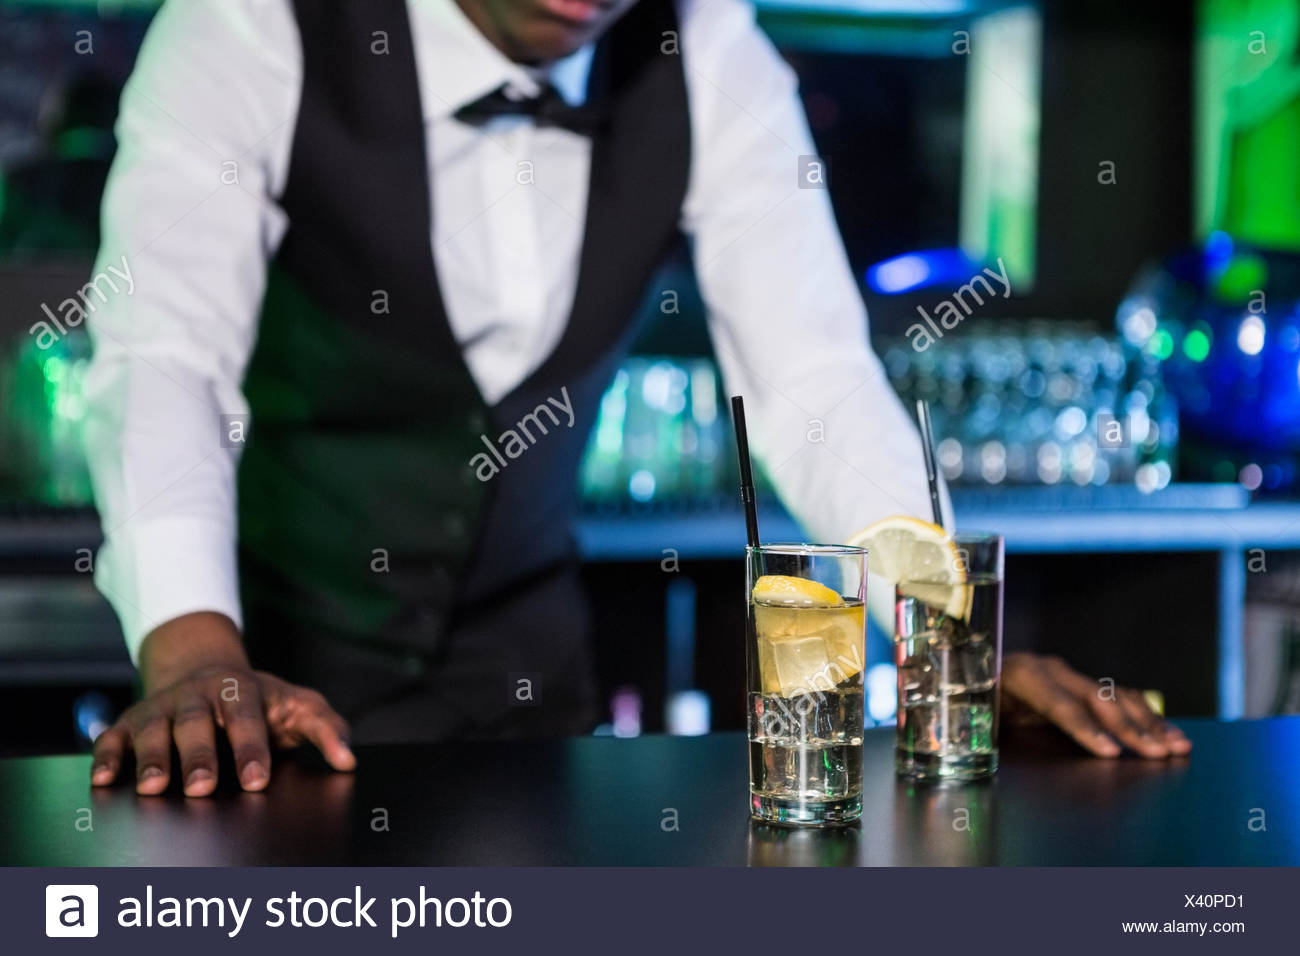 Two glasses of gin on bar counter - Stock Image